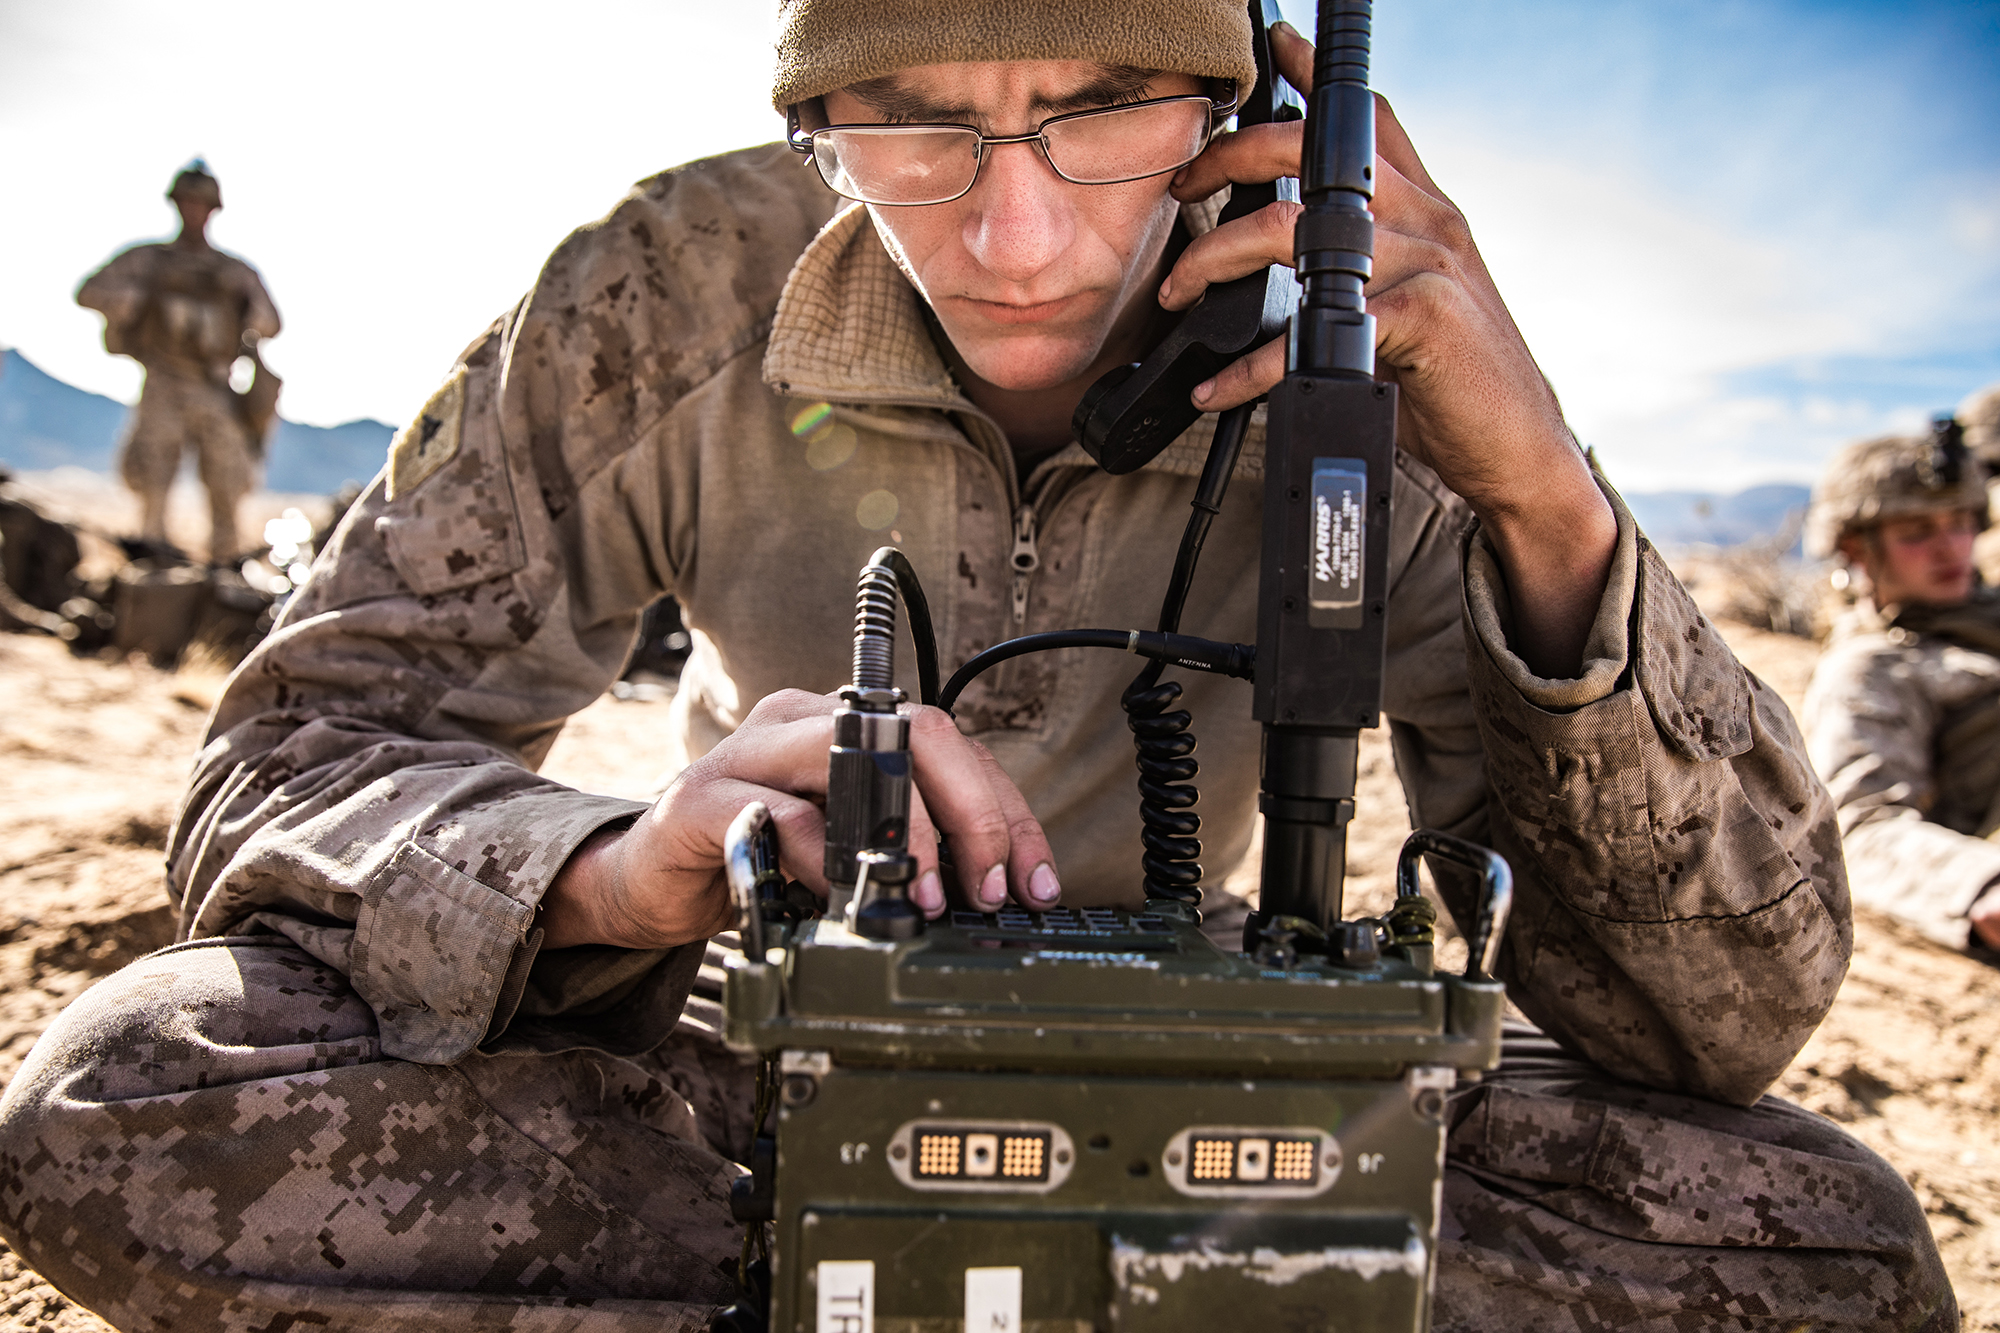 Marine Corps Lance Cpl. Zachary Cooper, a radio operator, uses the AN/PRC-117 Multiband Manpack Radio to set up communication during exercise Steel Knight (SK20) at Marine Corps Air Ground Combat Center Twentynine Palms, California, Dec. 5, 2019. (Cpl. Alexa M. Hernandez/Marine Corps)